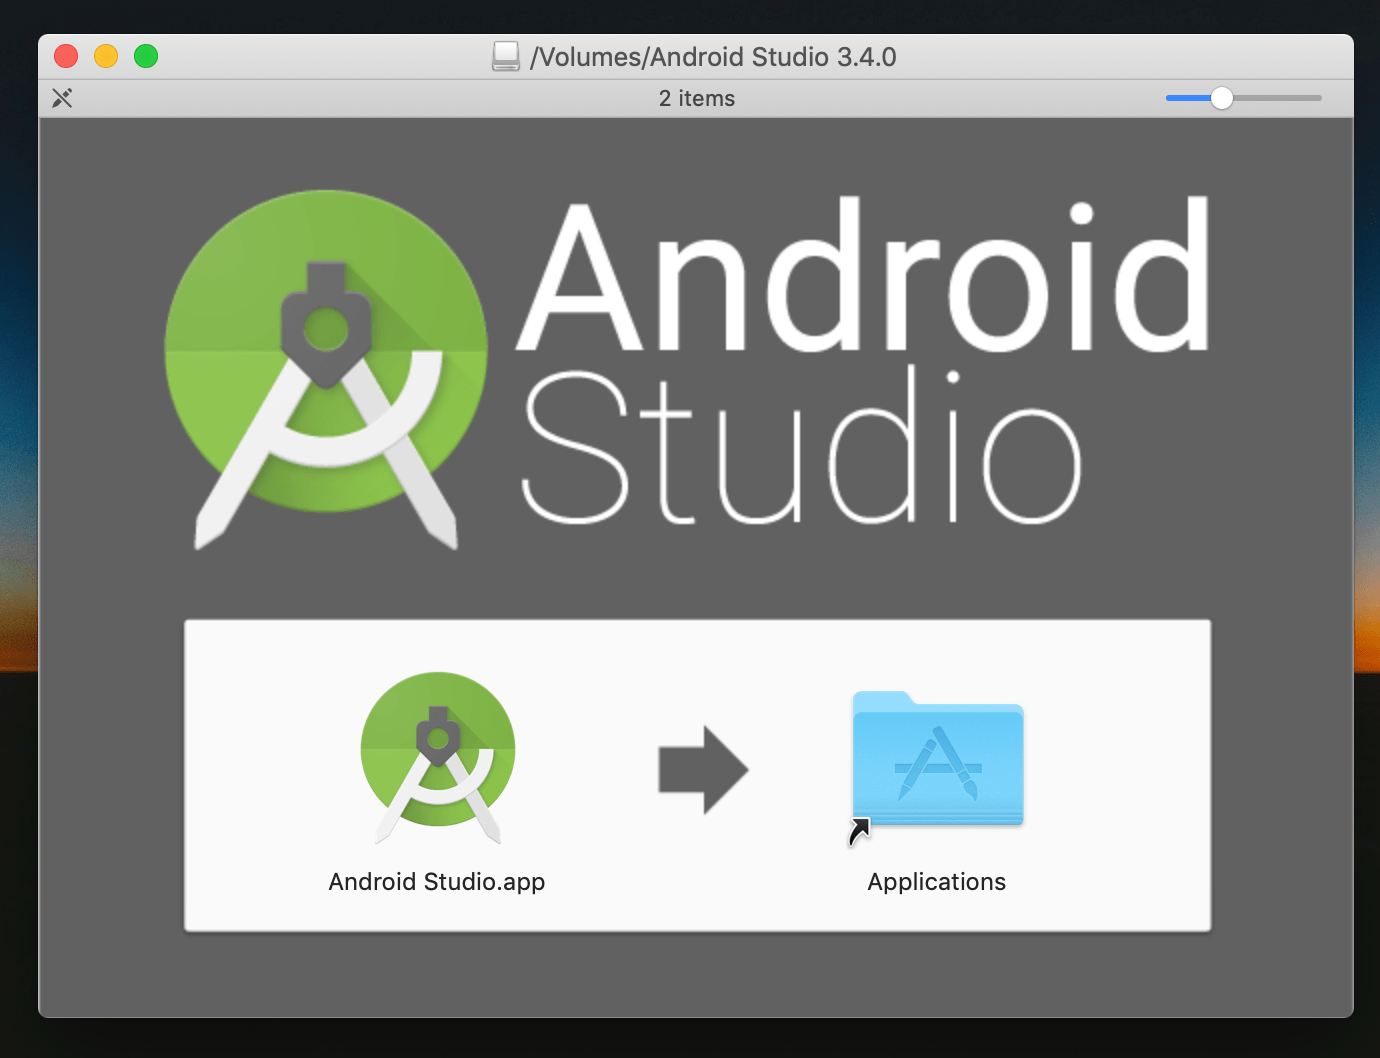 Android Studio: Movendo o app para o diretório /Applications